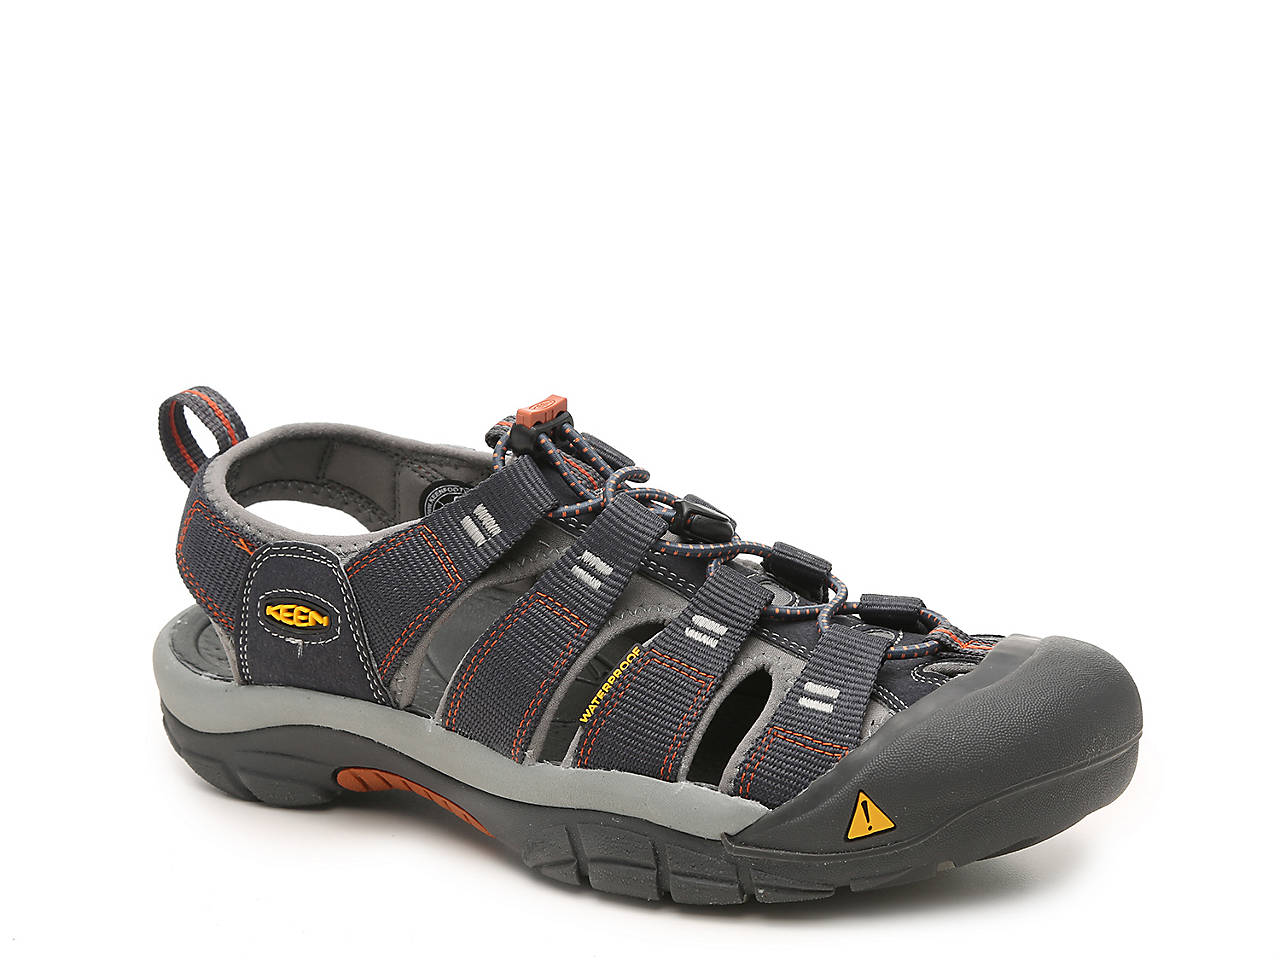 e70bbd212390 Keen Newport H2 Sandal Men s Shoes